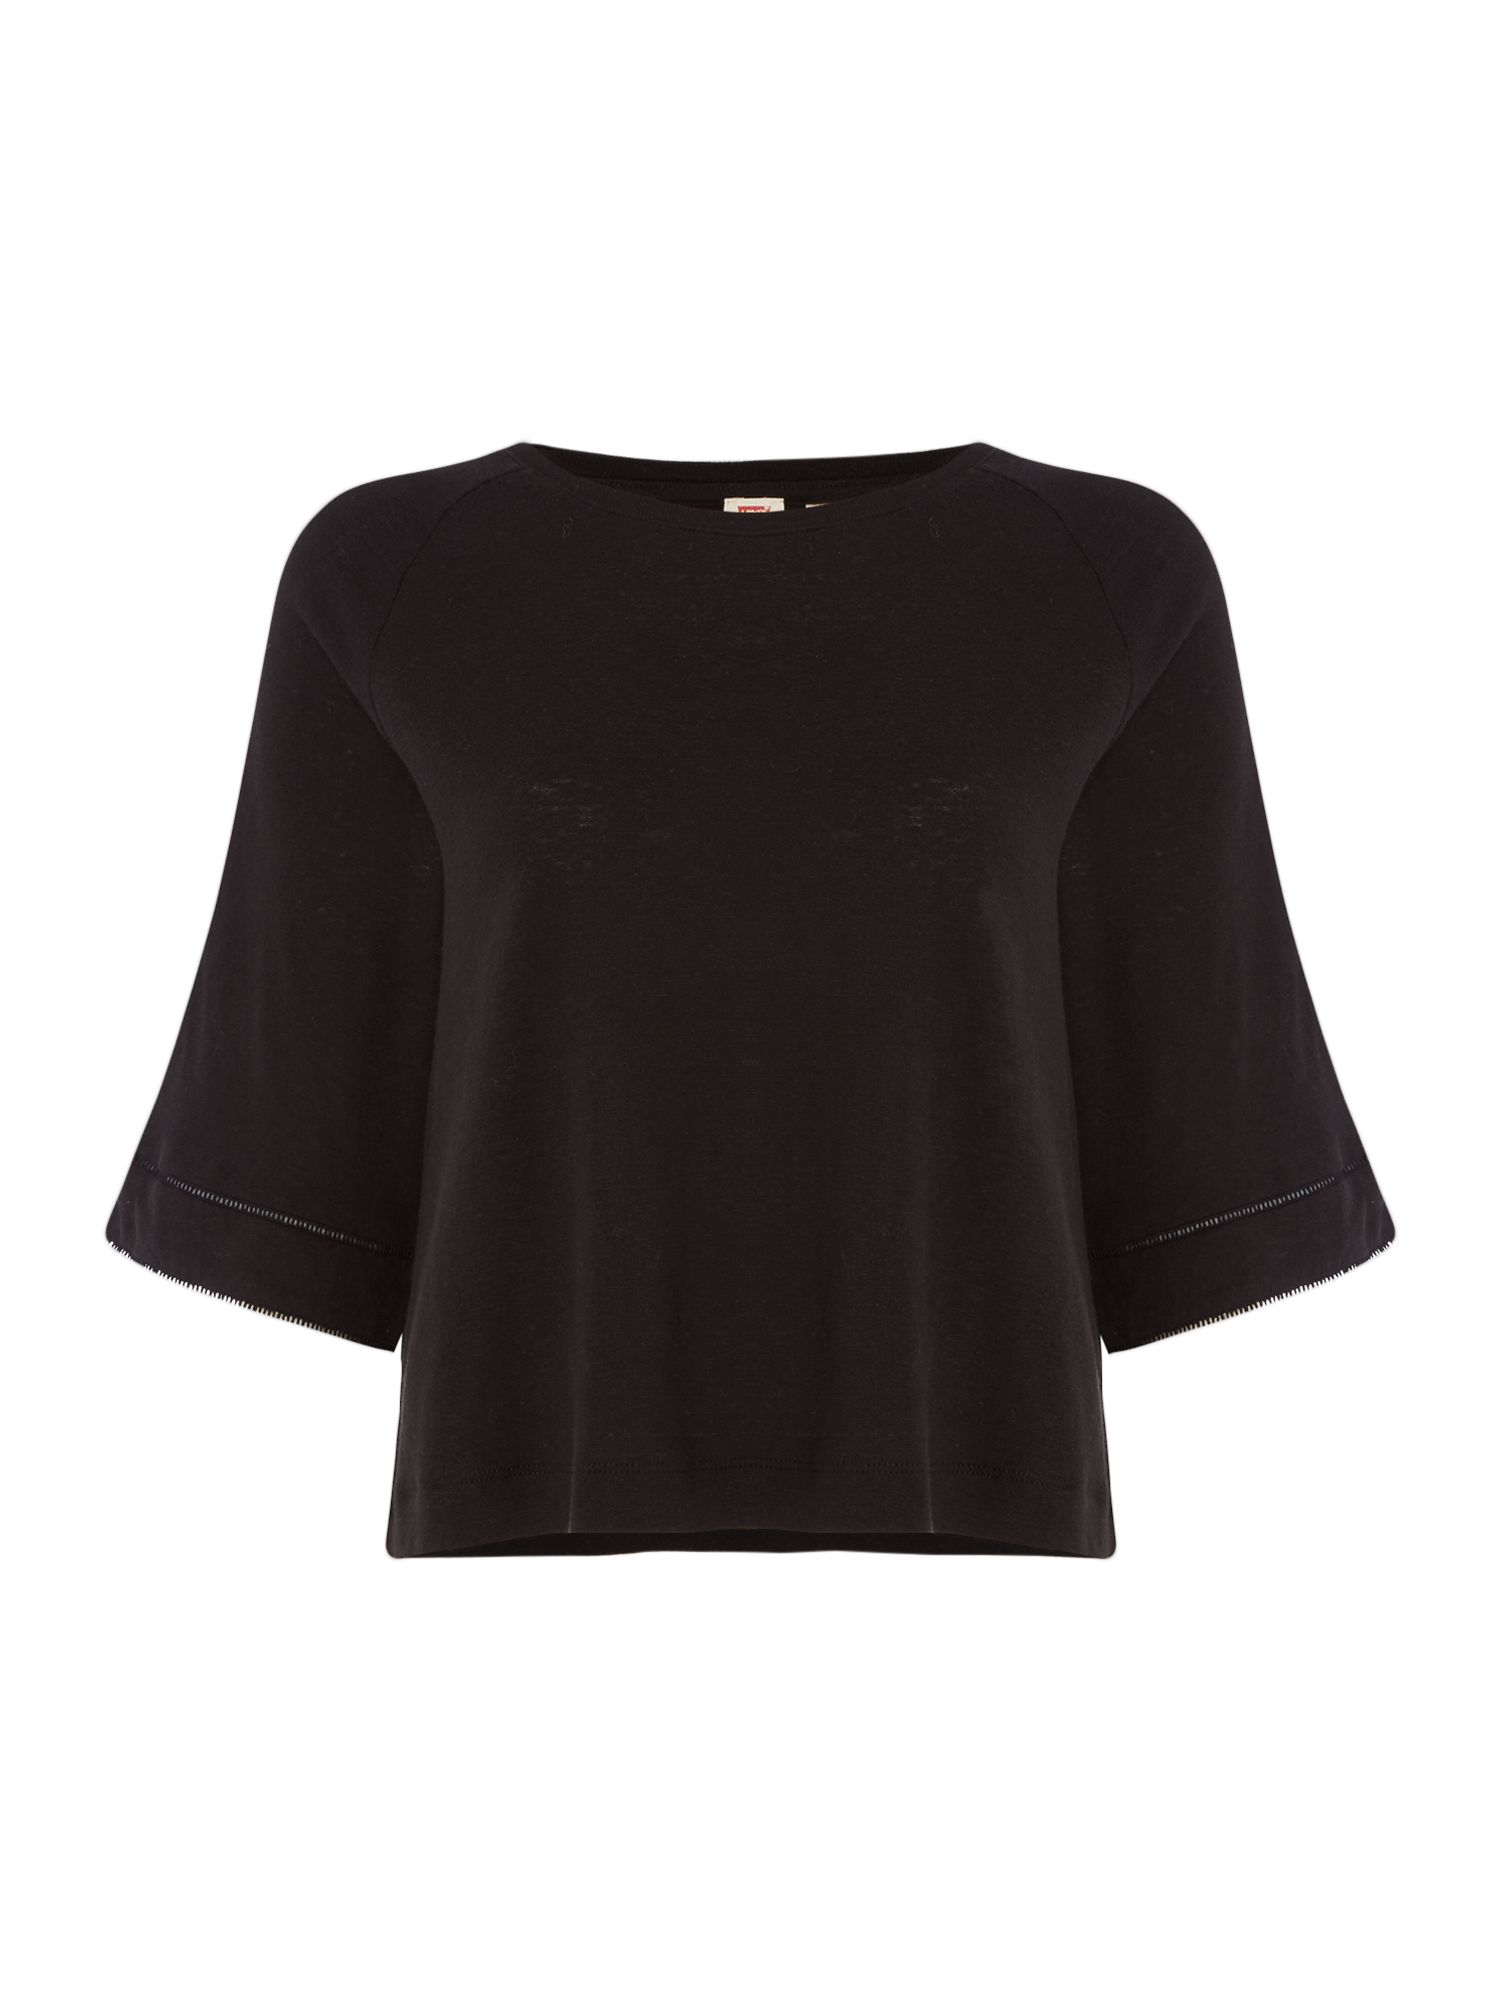 Levi's Raglan T-shirt With Eyelet Detail In Jet Black, Black